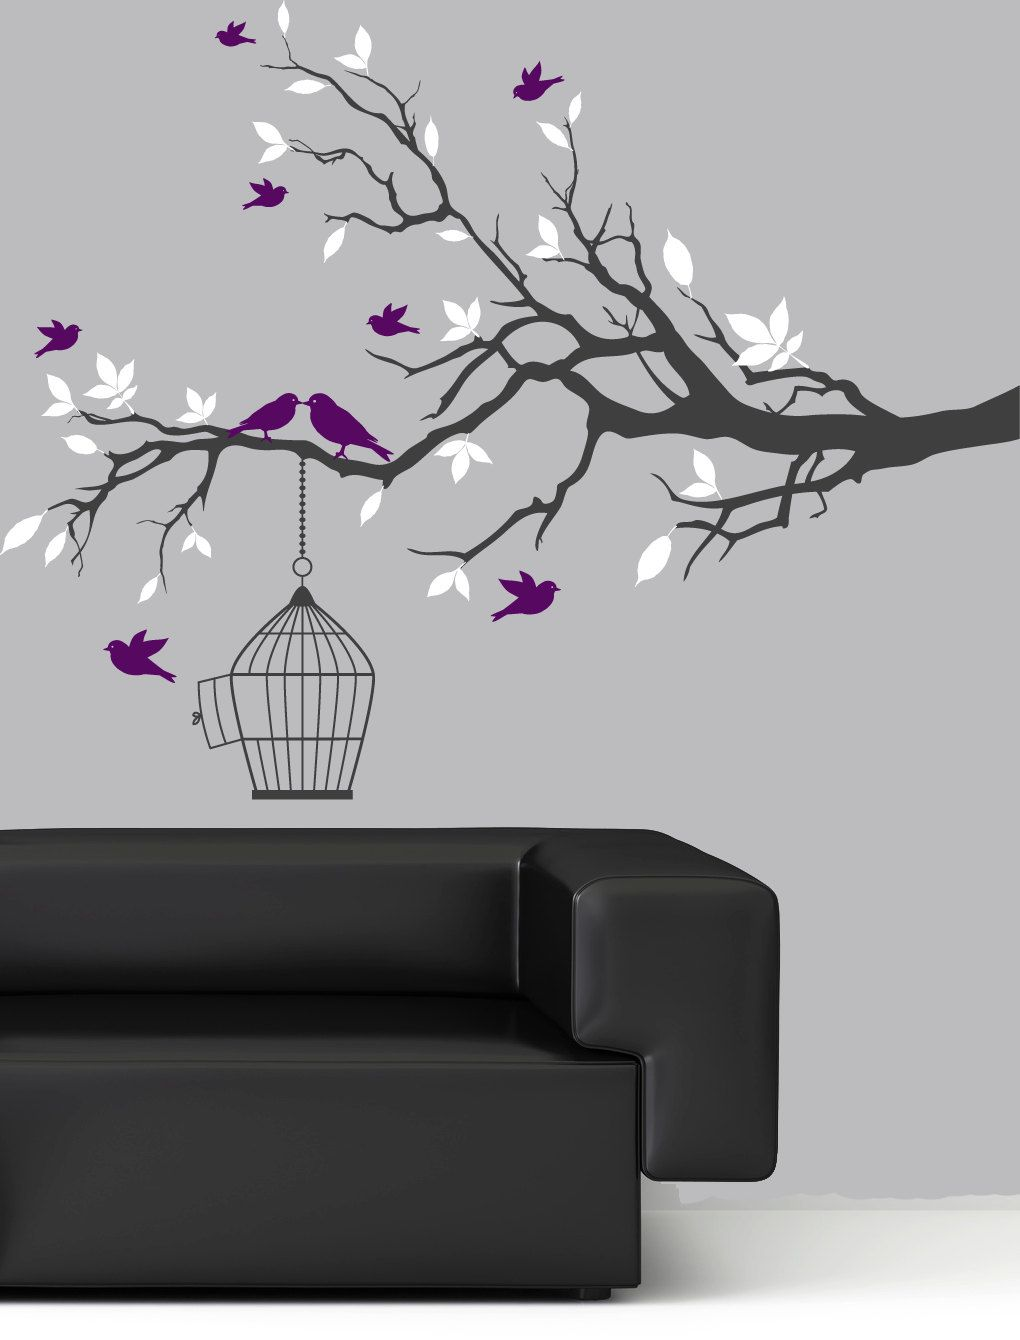 Wall Decal Tree Branch Wall Art Sticker Purple Birds White Leaf - Vinyl decals for walls etsy